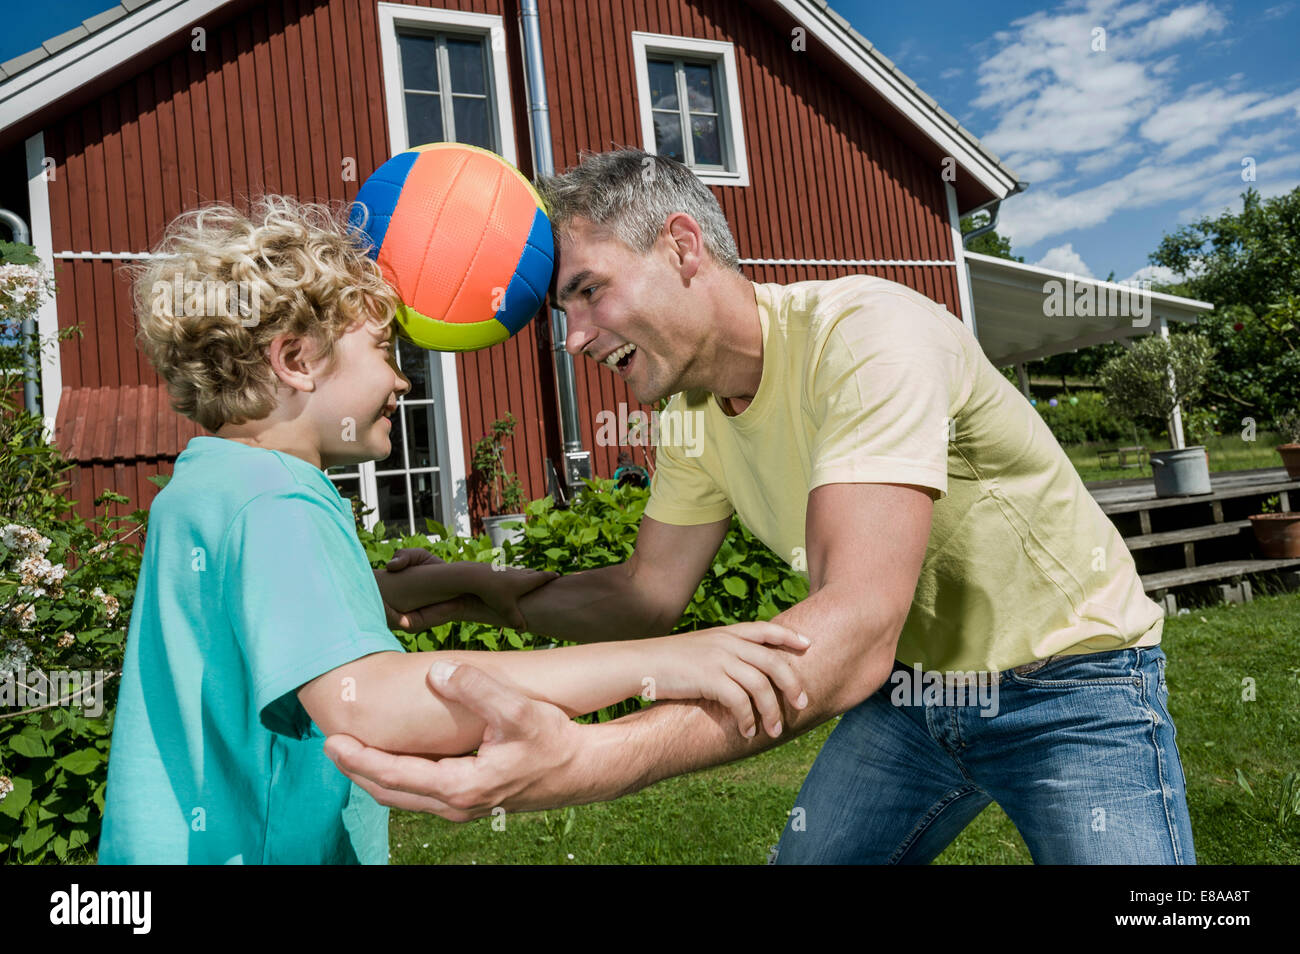 Father son balancing football playing fun garden - Stock Image